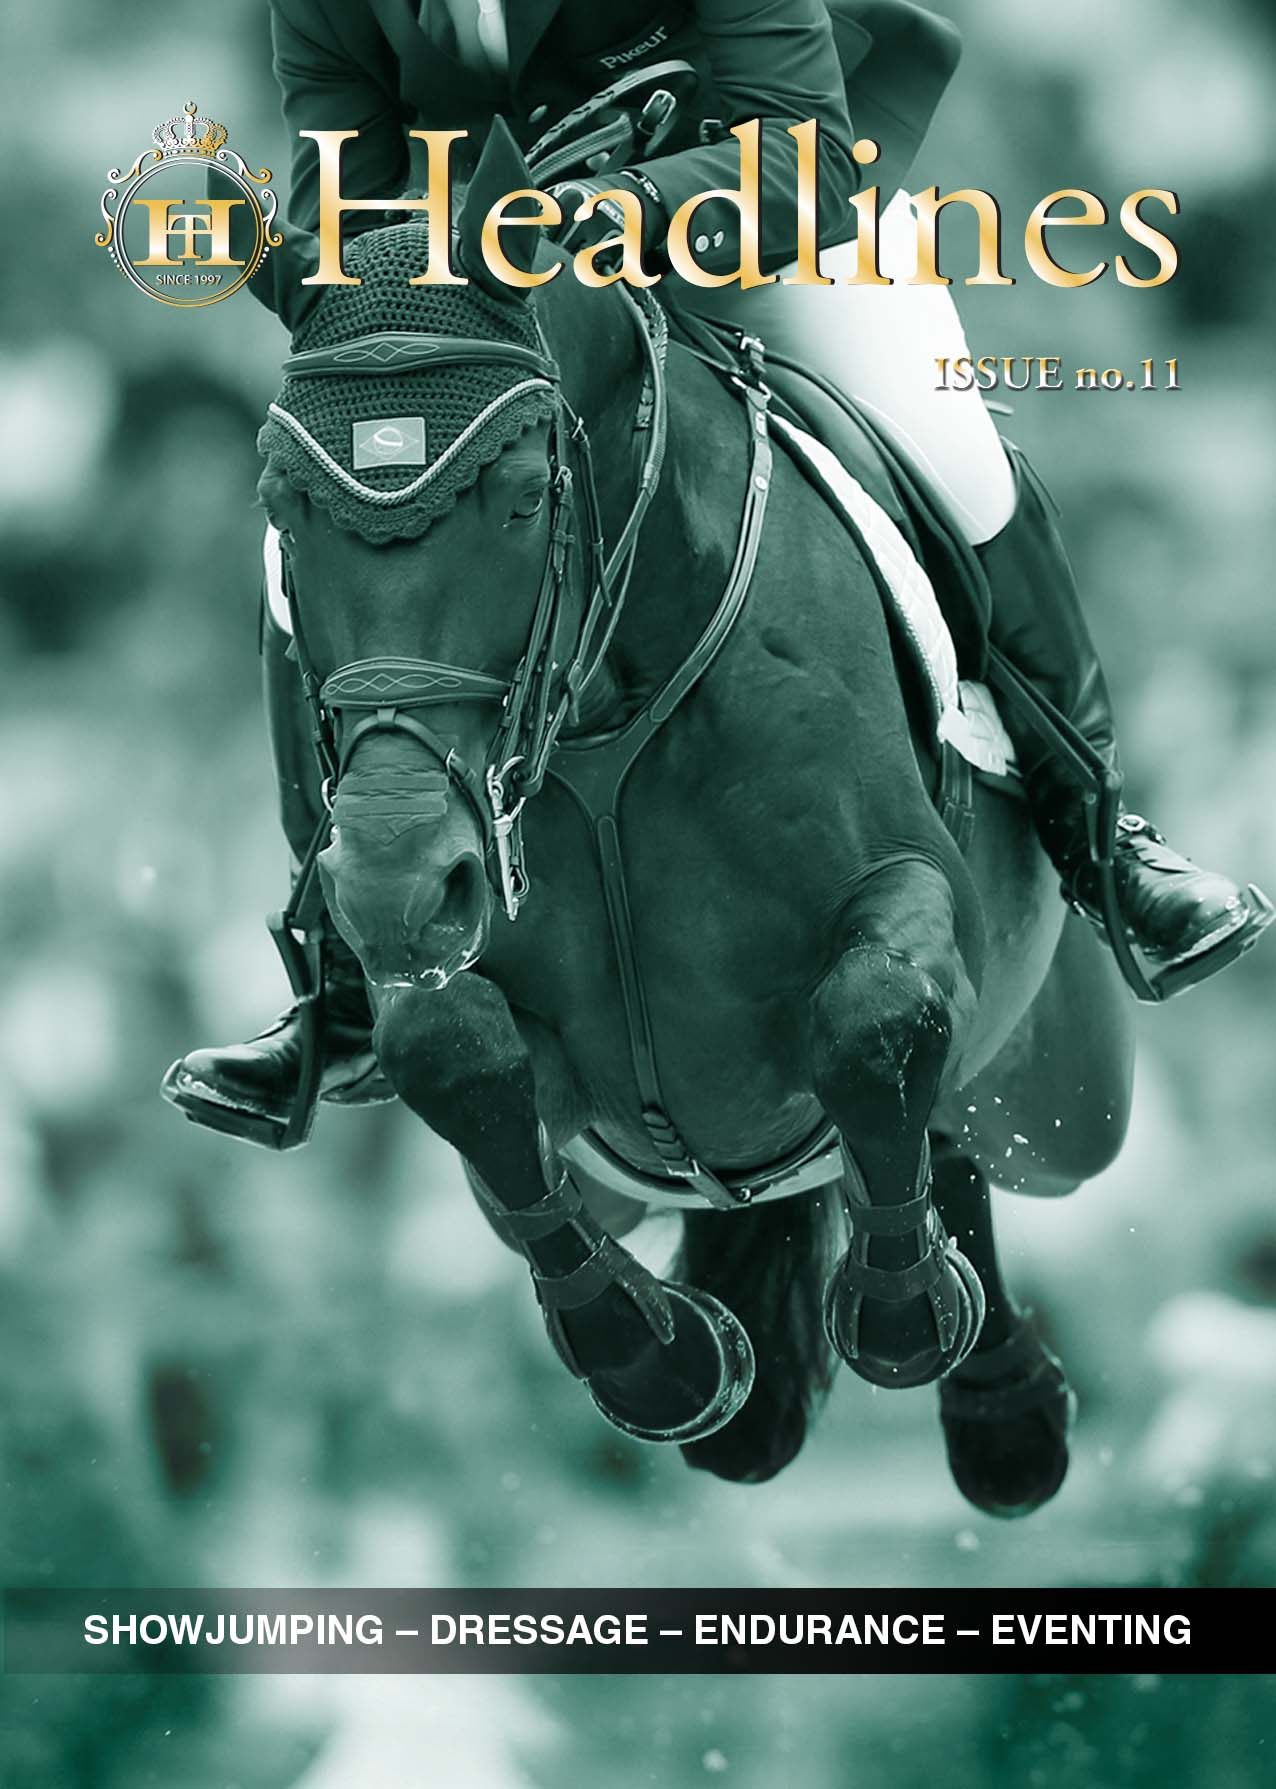 Horse Times Egypt: Equestrian Magazine :headlines :Sunday 15-Nov-2015 Headlines